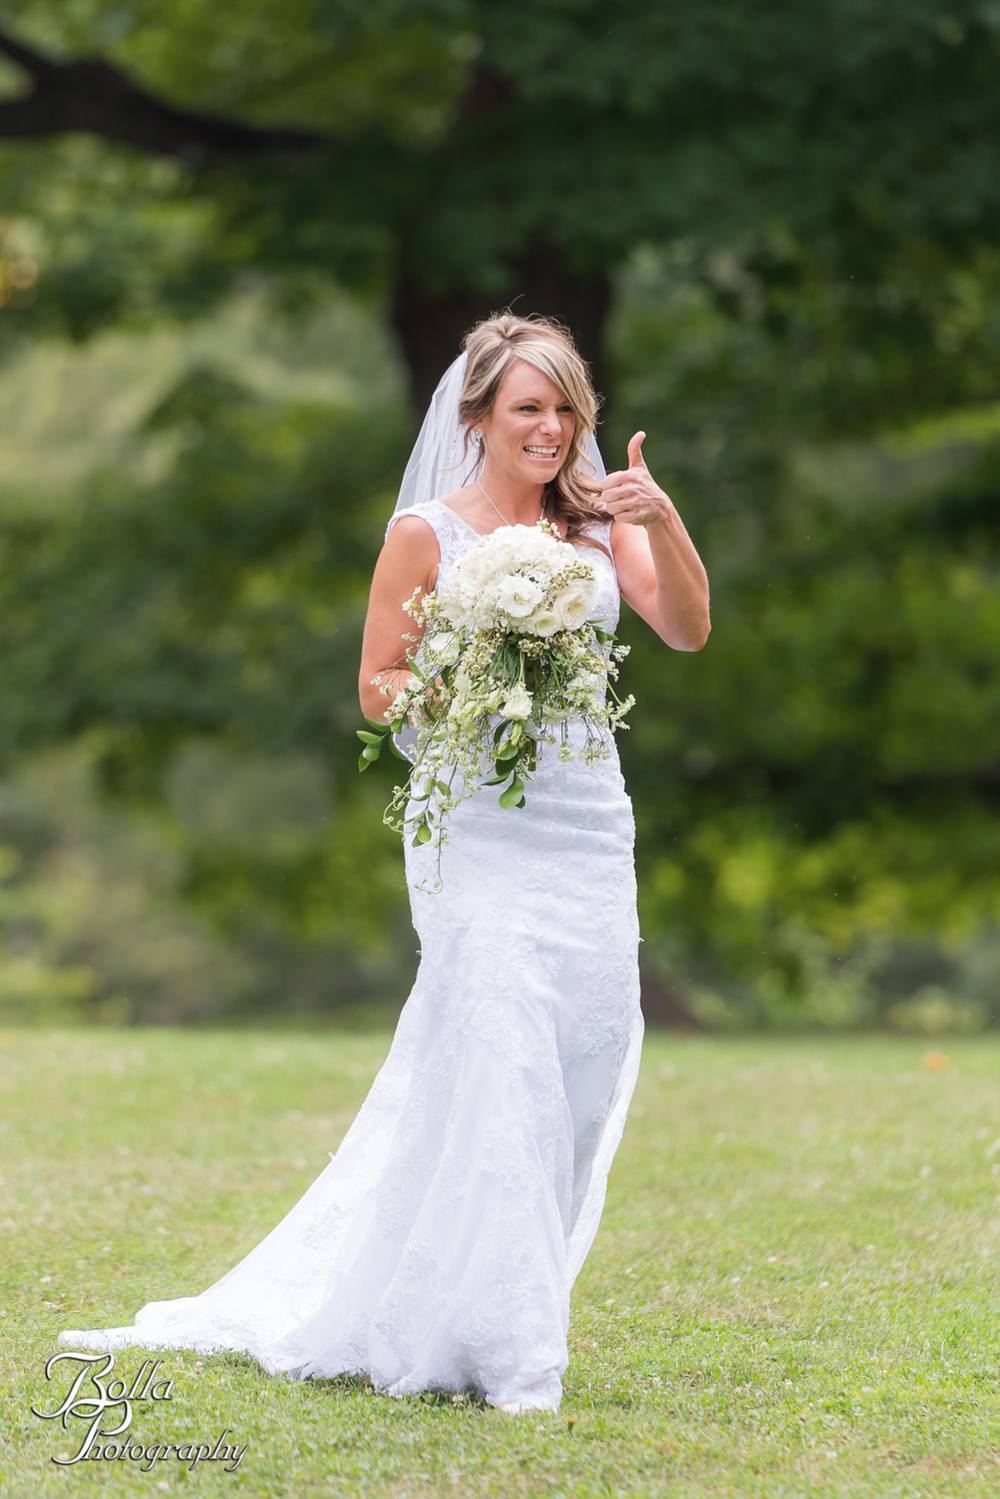 Wedding Dresses Springfield Il 65 New Bolla Photography St Louis